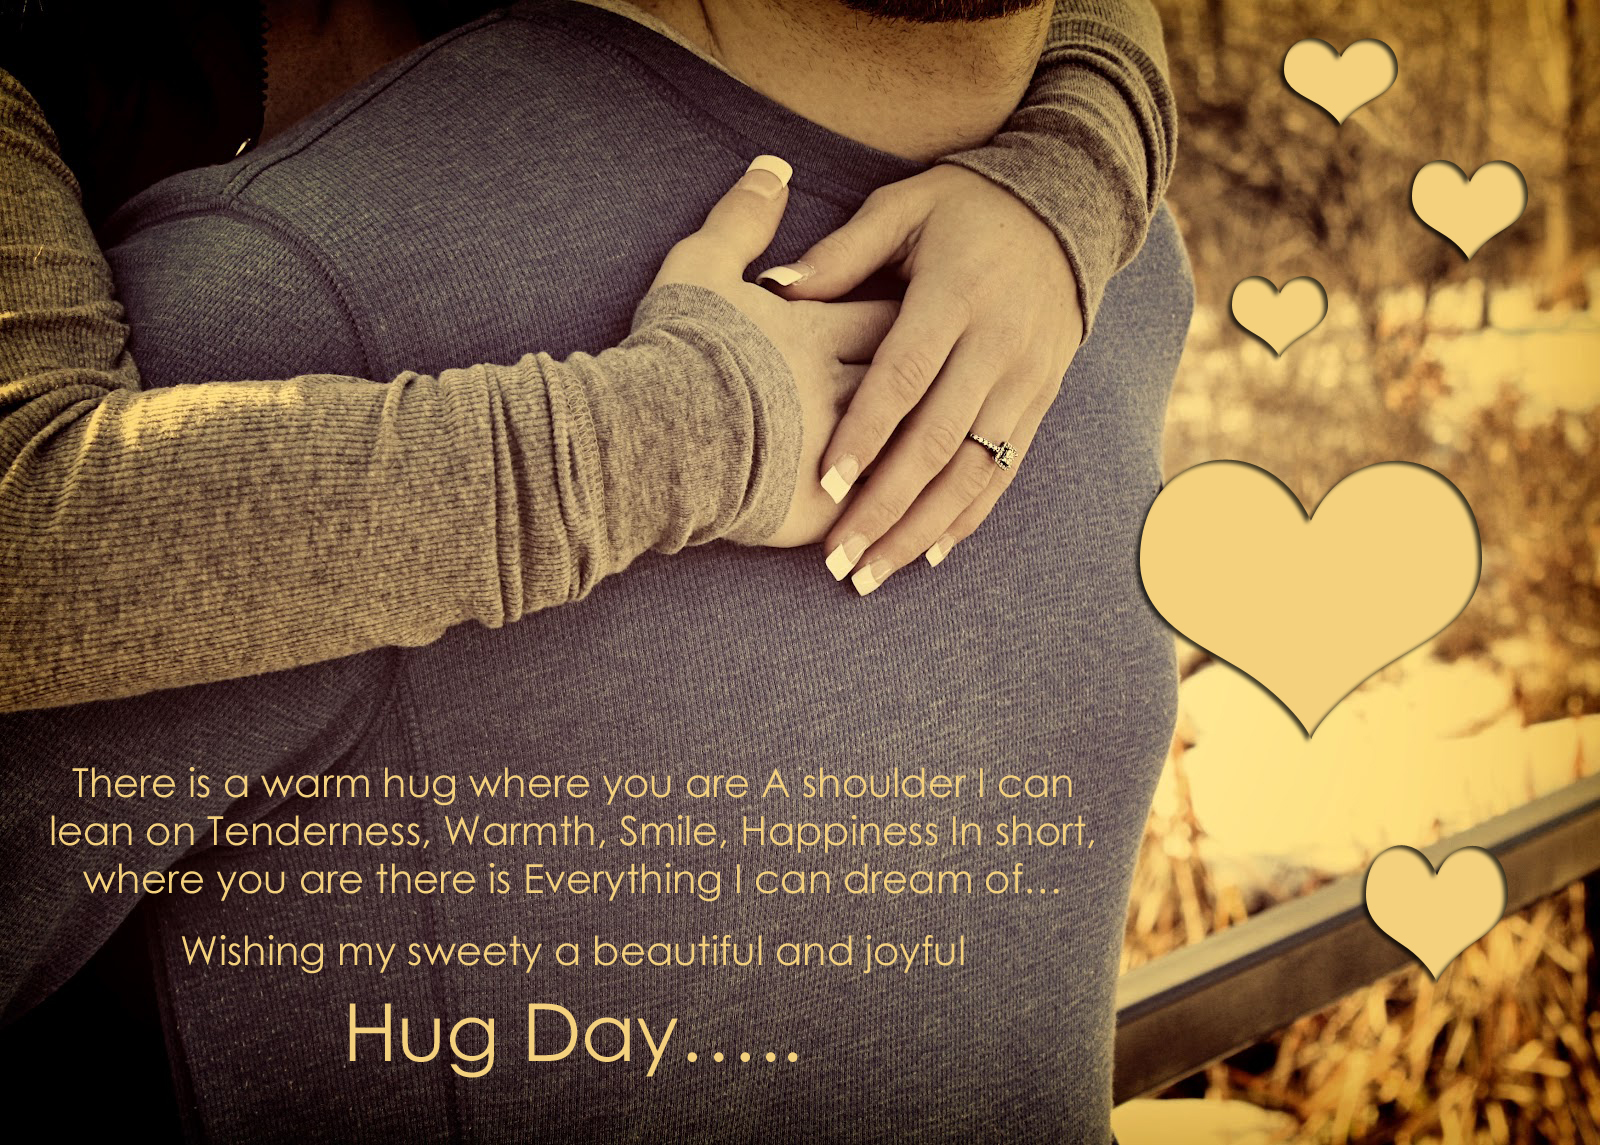 Sending Hugs And Kisses Quotes Happy hug day 2014 wishes 1600x1145